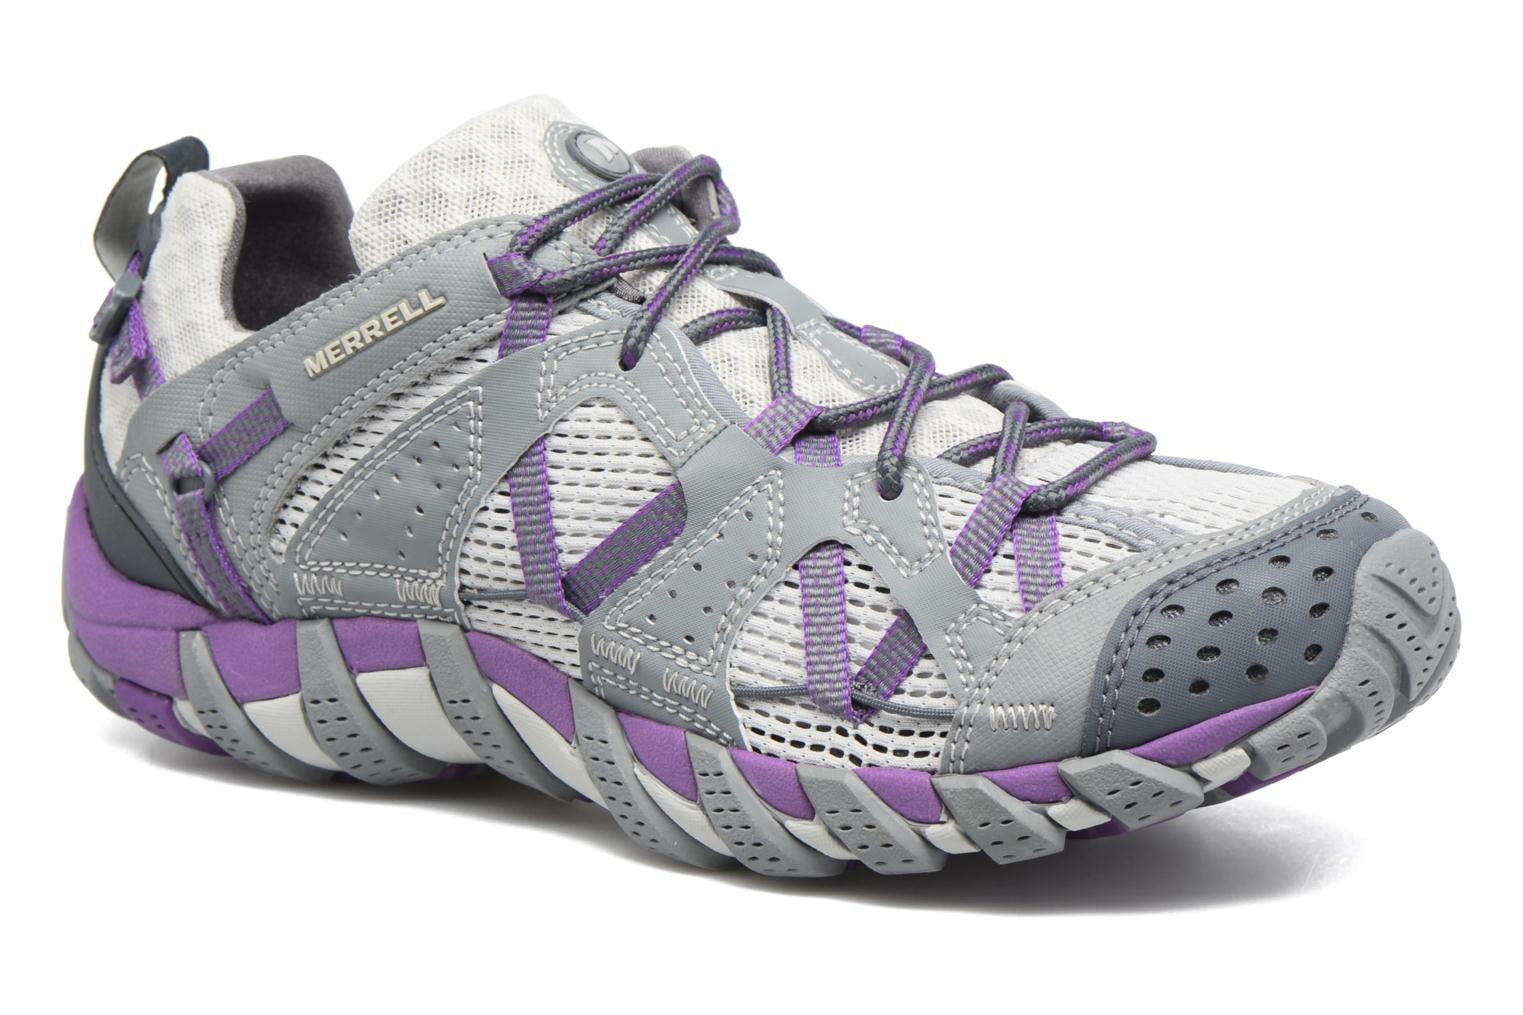 Marques Chaussure femme Merrell femme Waterpro Maipo W Grey/Royal Lilac